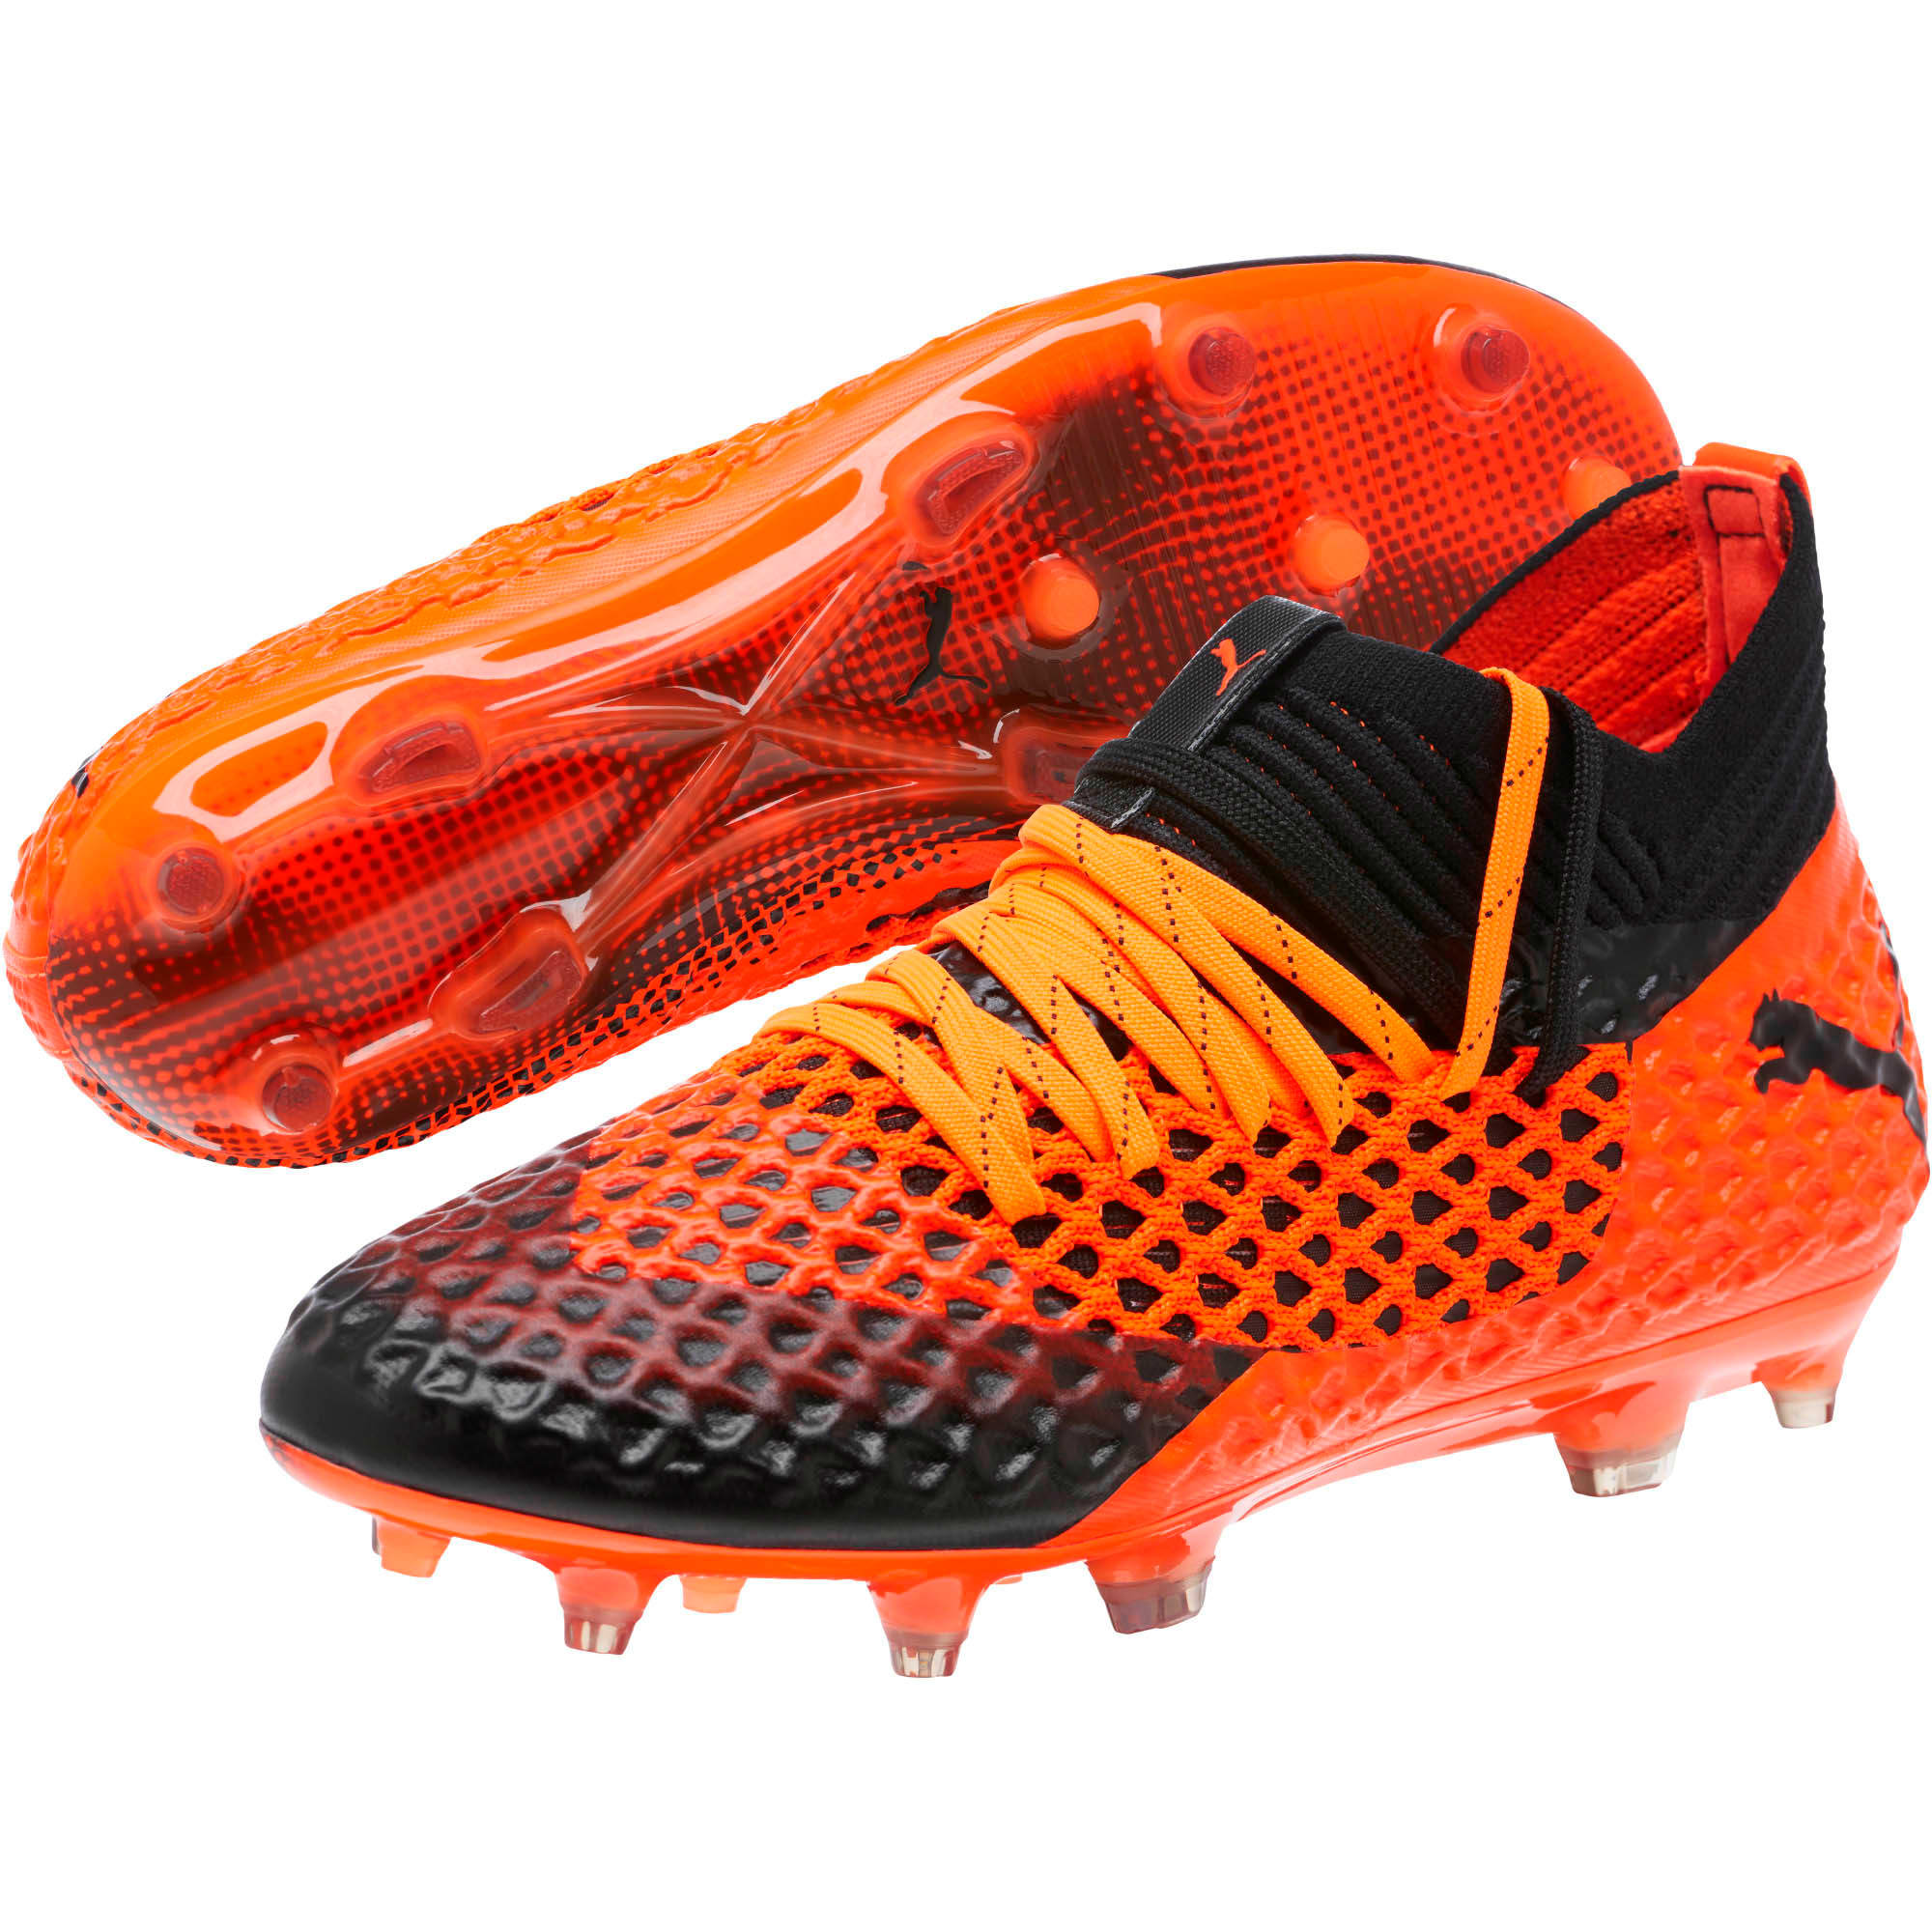 Thumbnail 2 of FUTURE 2.1 NETFIT FG/AG Soccer Cleats JR, Black-Orange, medium